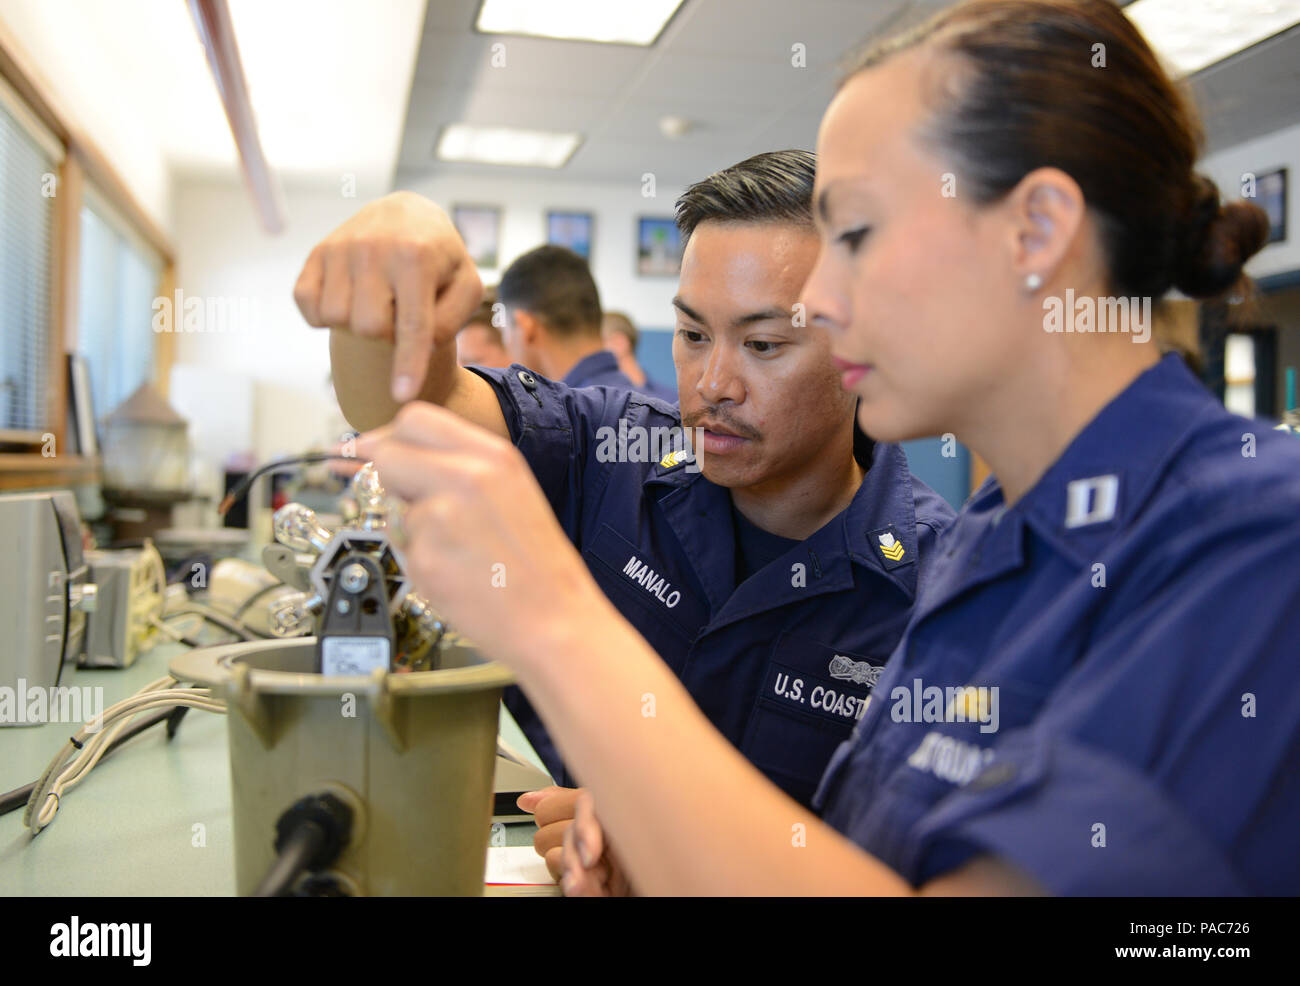 Lt. Furyisa Miller and Petty Officer 1st Class Michael Manalo, troubleshoot a light during a five-day minor aids to navigation maintenance training session for various units within the Coast Guard 14th District at Base Honolulu, March 9, 2016. Instructors from the Coast Guard 13th District conducted an overview of the ATON world providing instruction about buoys, structures, dayboards, lights and solar panels ensuring the members become efficient in their knowledge and capabilities to various aids they may work on in the field. (U.S. Coast Guard photos by Petty Officer 2nd Class Tara Molle/Rel - Stock Image